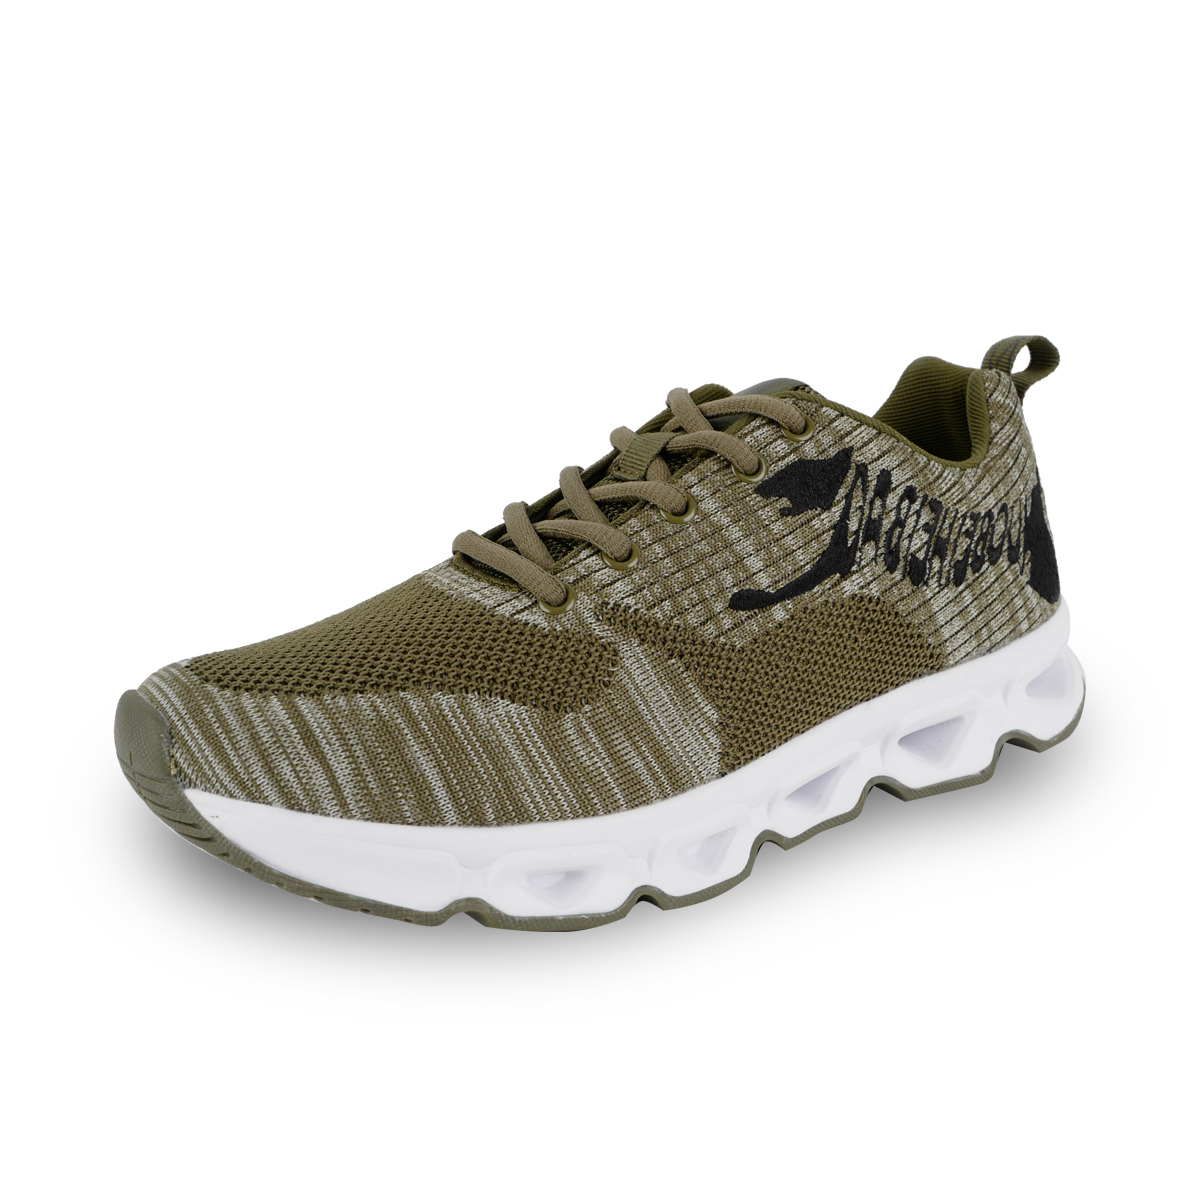 lace shoe young man shoes sport Europe Baolite summer Camouflage spring man RpfZpq